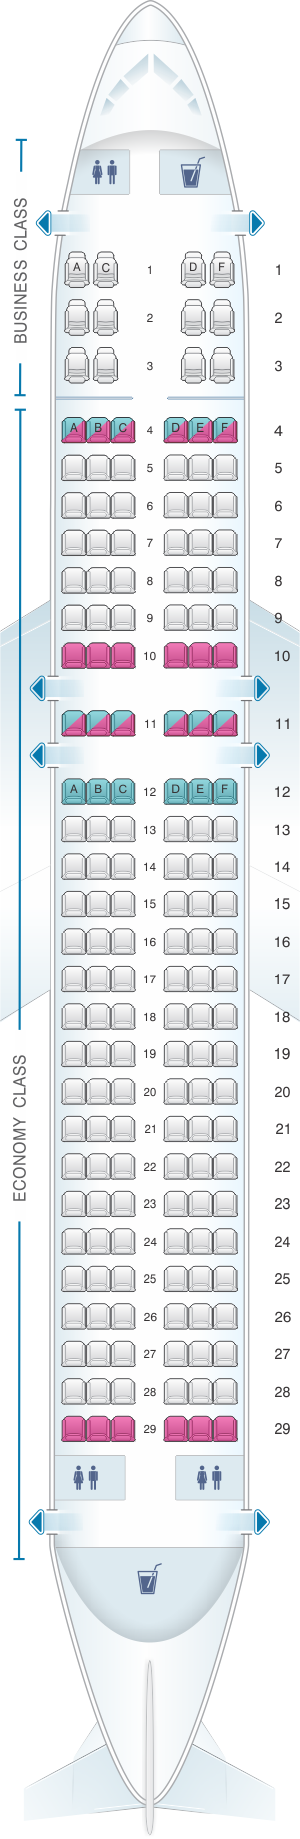 Plan De Cabine Brussels Airlines Airbus A320 Seatmaestro Fr